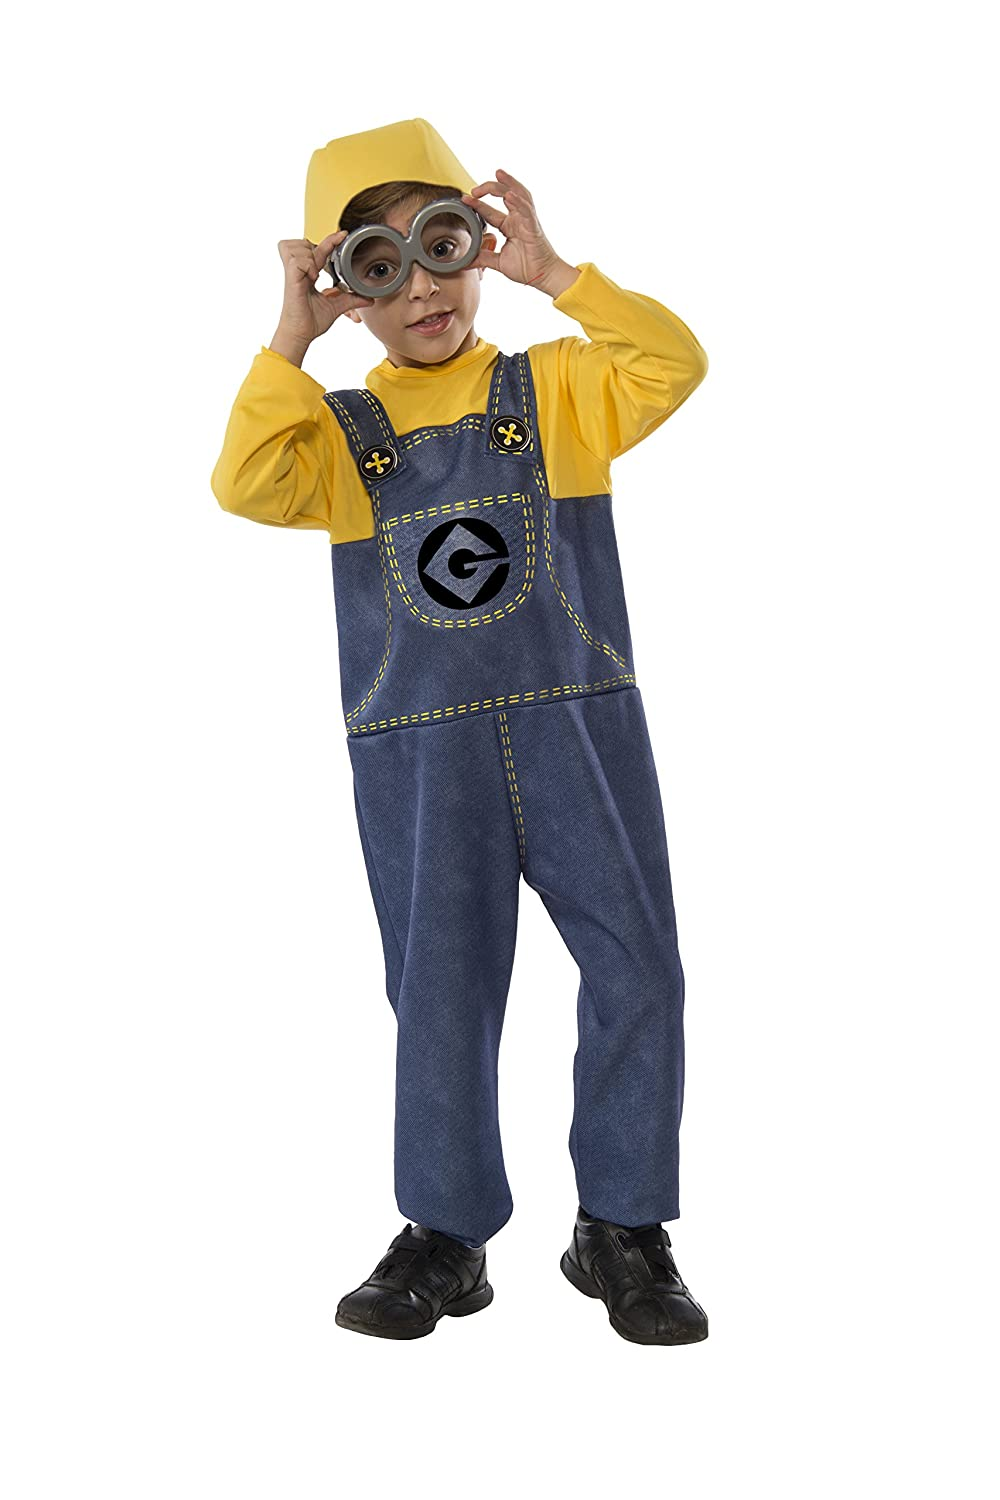 87d47fa29ca Amazon.com  Minion Costume Set  Toys   Games